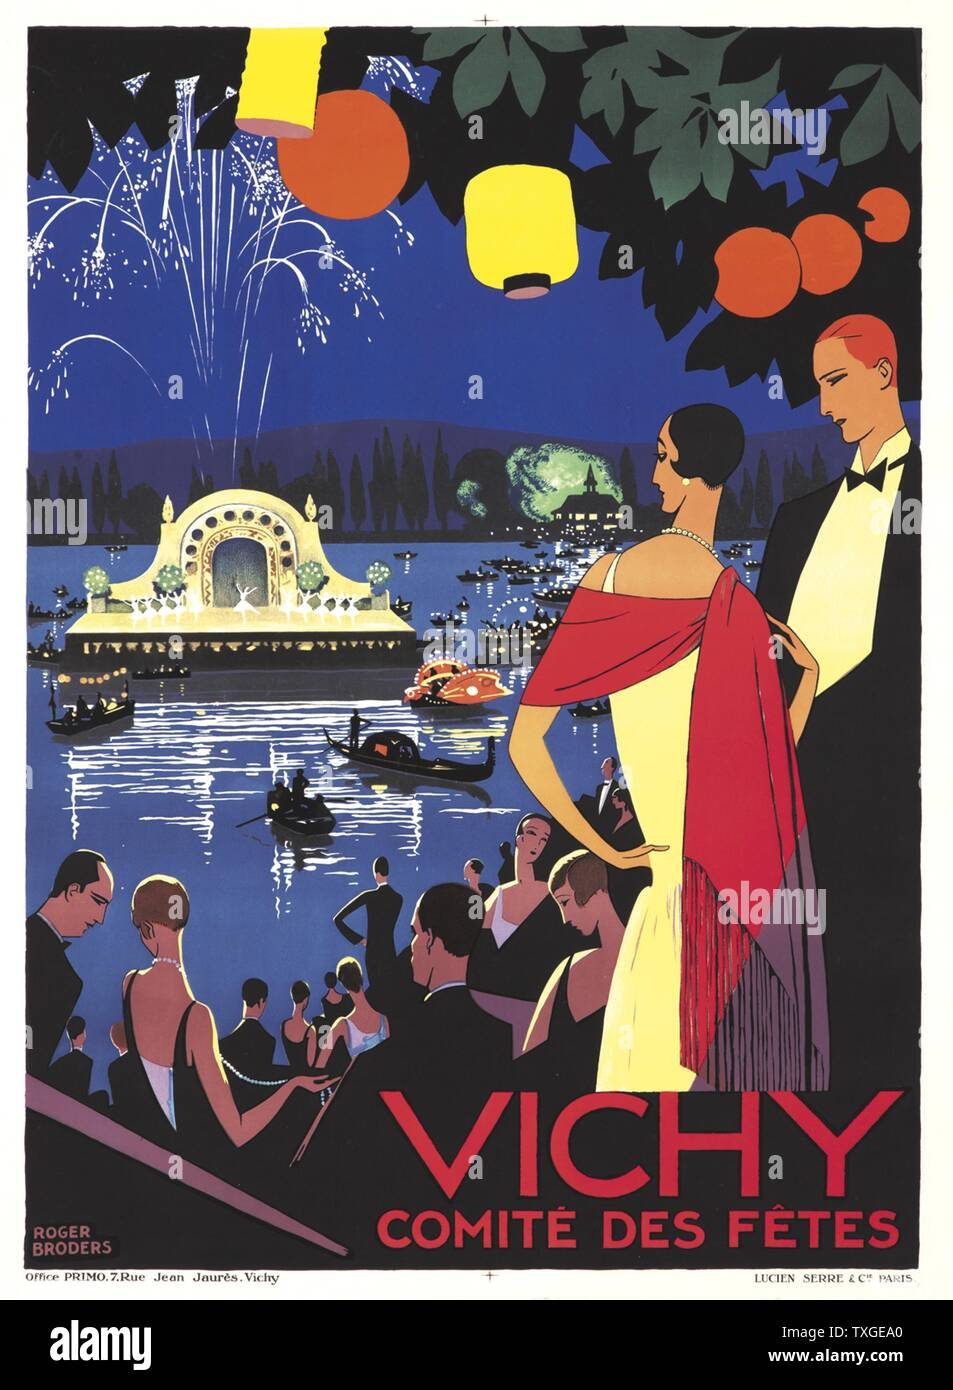 Giclee pint titled 'Vichy Comite des Fetes' by Roger Broders (1883-1953) French illustrator and artist. Dated 1926 - Stock Image